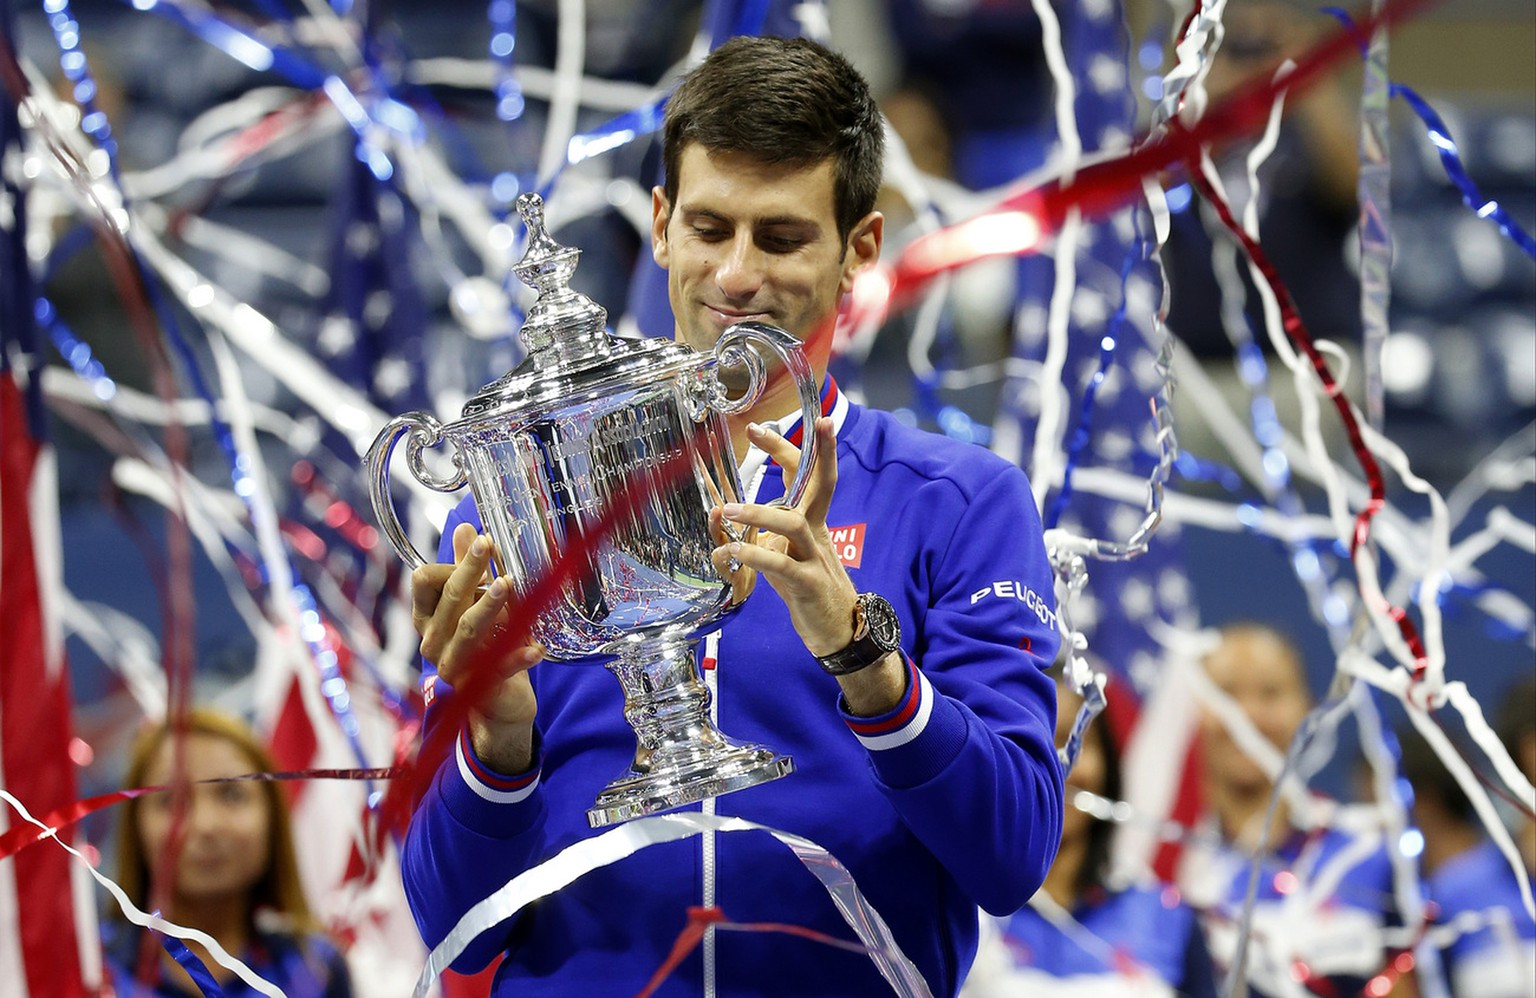 Novak Djokovic, of Serbia, holds up the championship trophy after defeating Roger Federer, of Switzerland, during the men's championship match of the U.S. Open tennis tournament, Sunday, Sept. 13, 2015, in New York. (AP Photo/Julio Cortez)